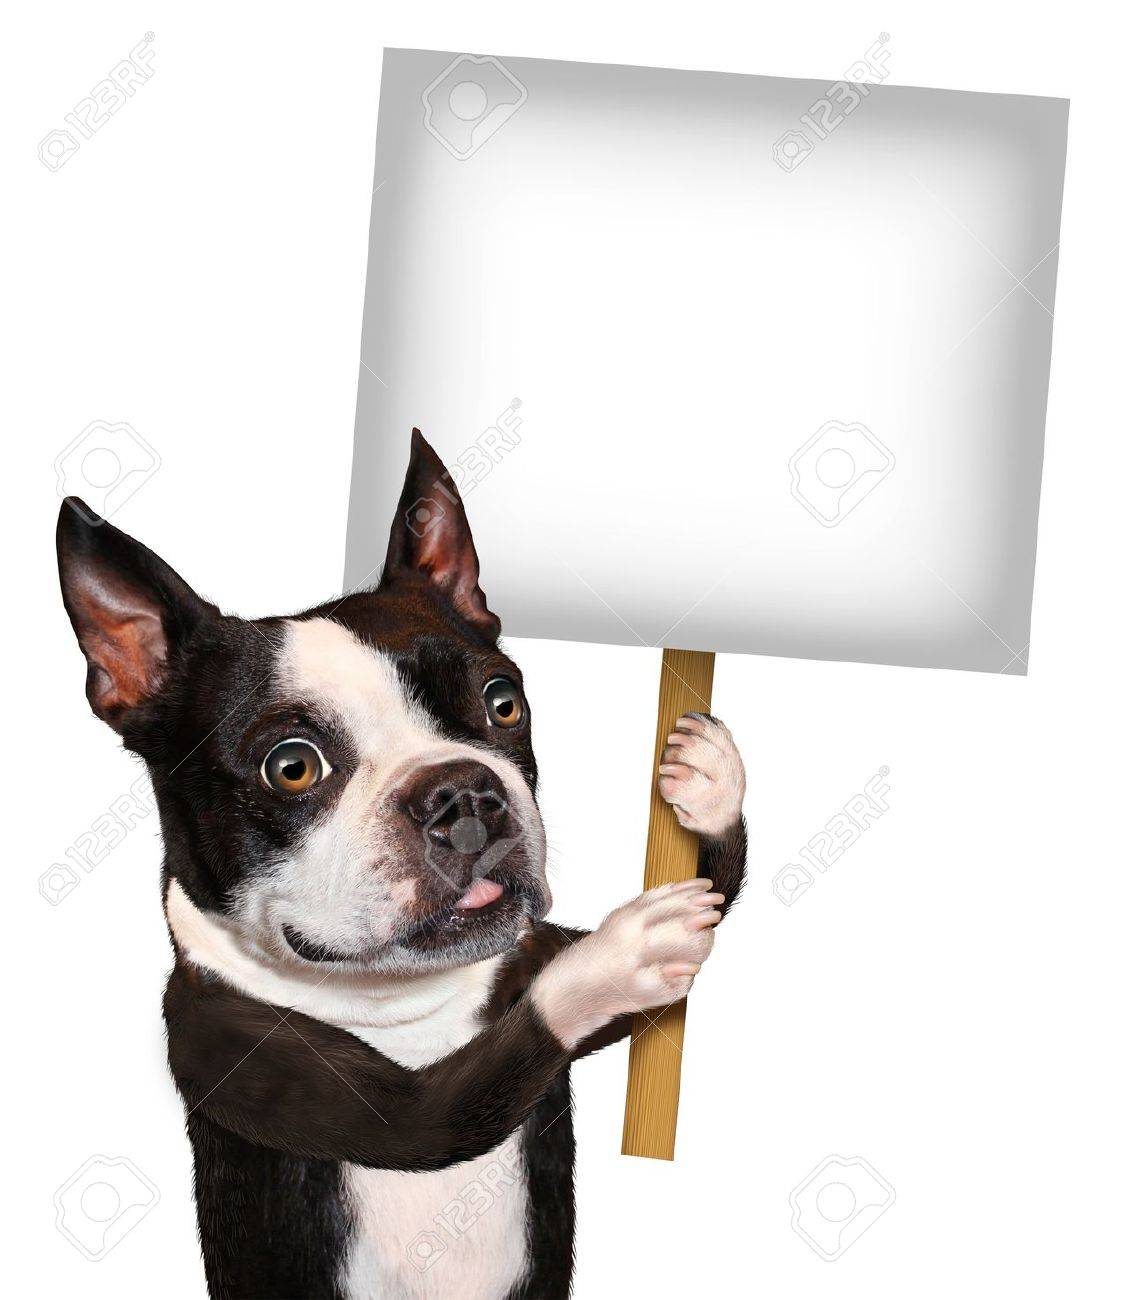 Dog holding a blank sign as a Boston Terrier with a smiling happy expression advertising and communicating a message pertaining to pet care and veterinary issues on white Stock Photo - 17472614